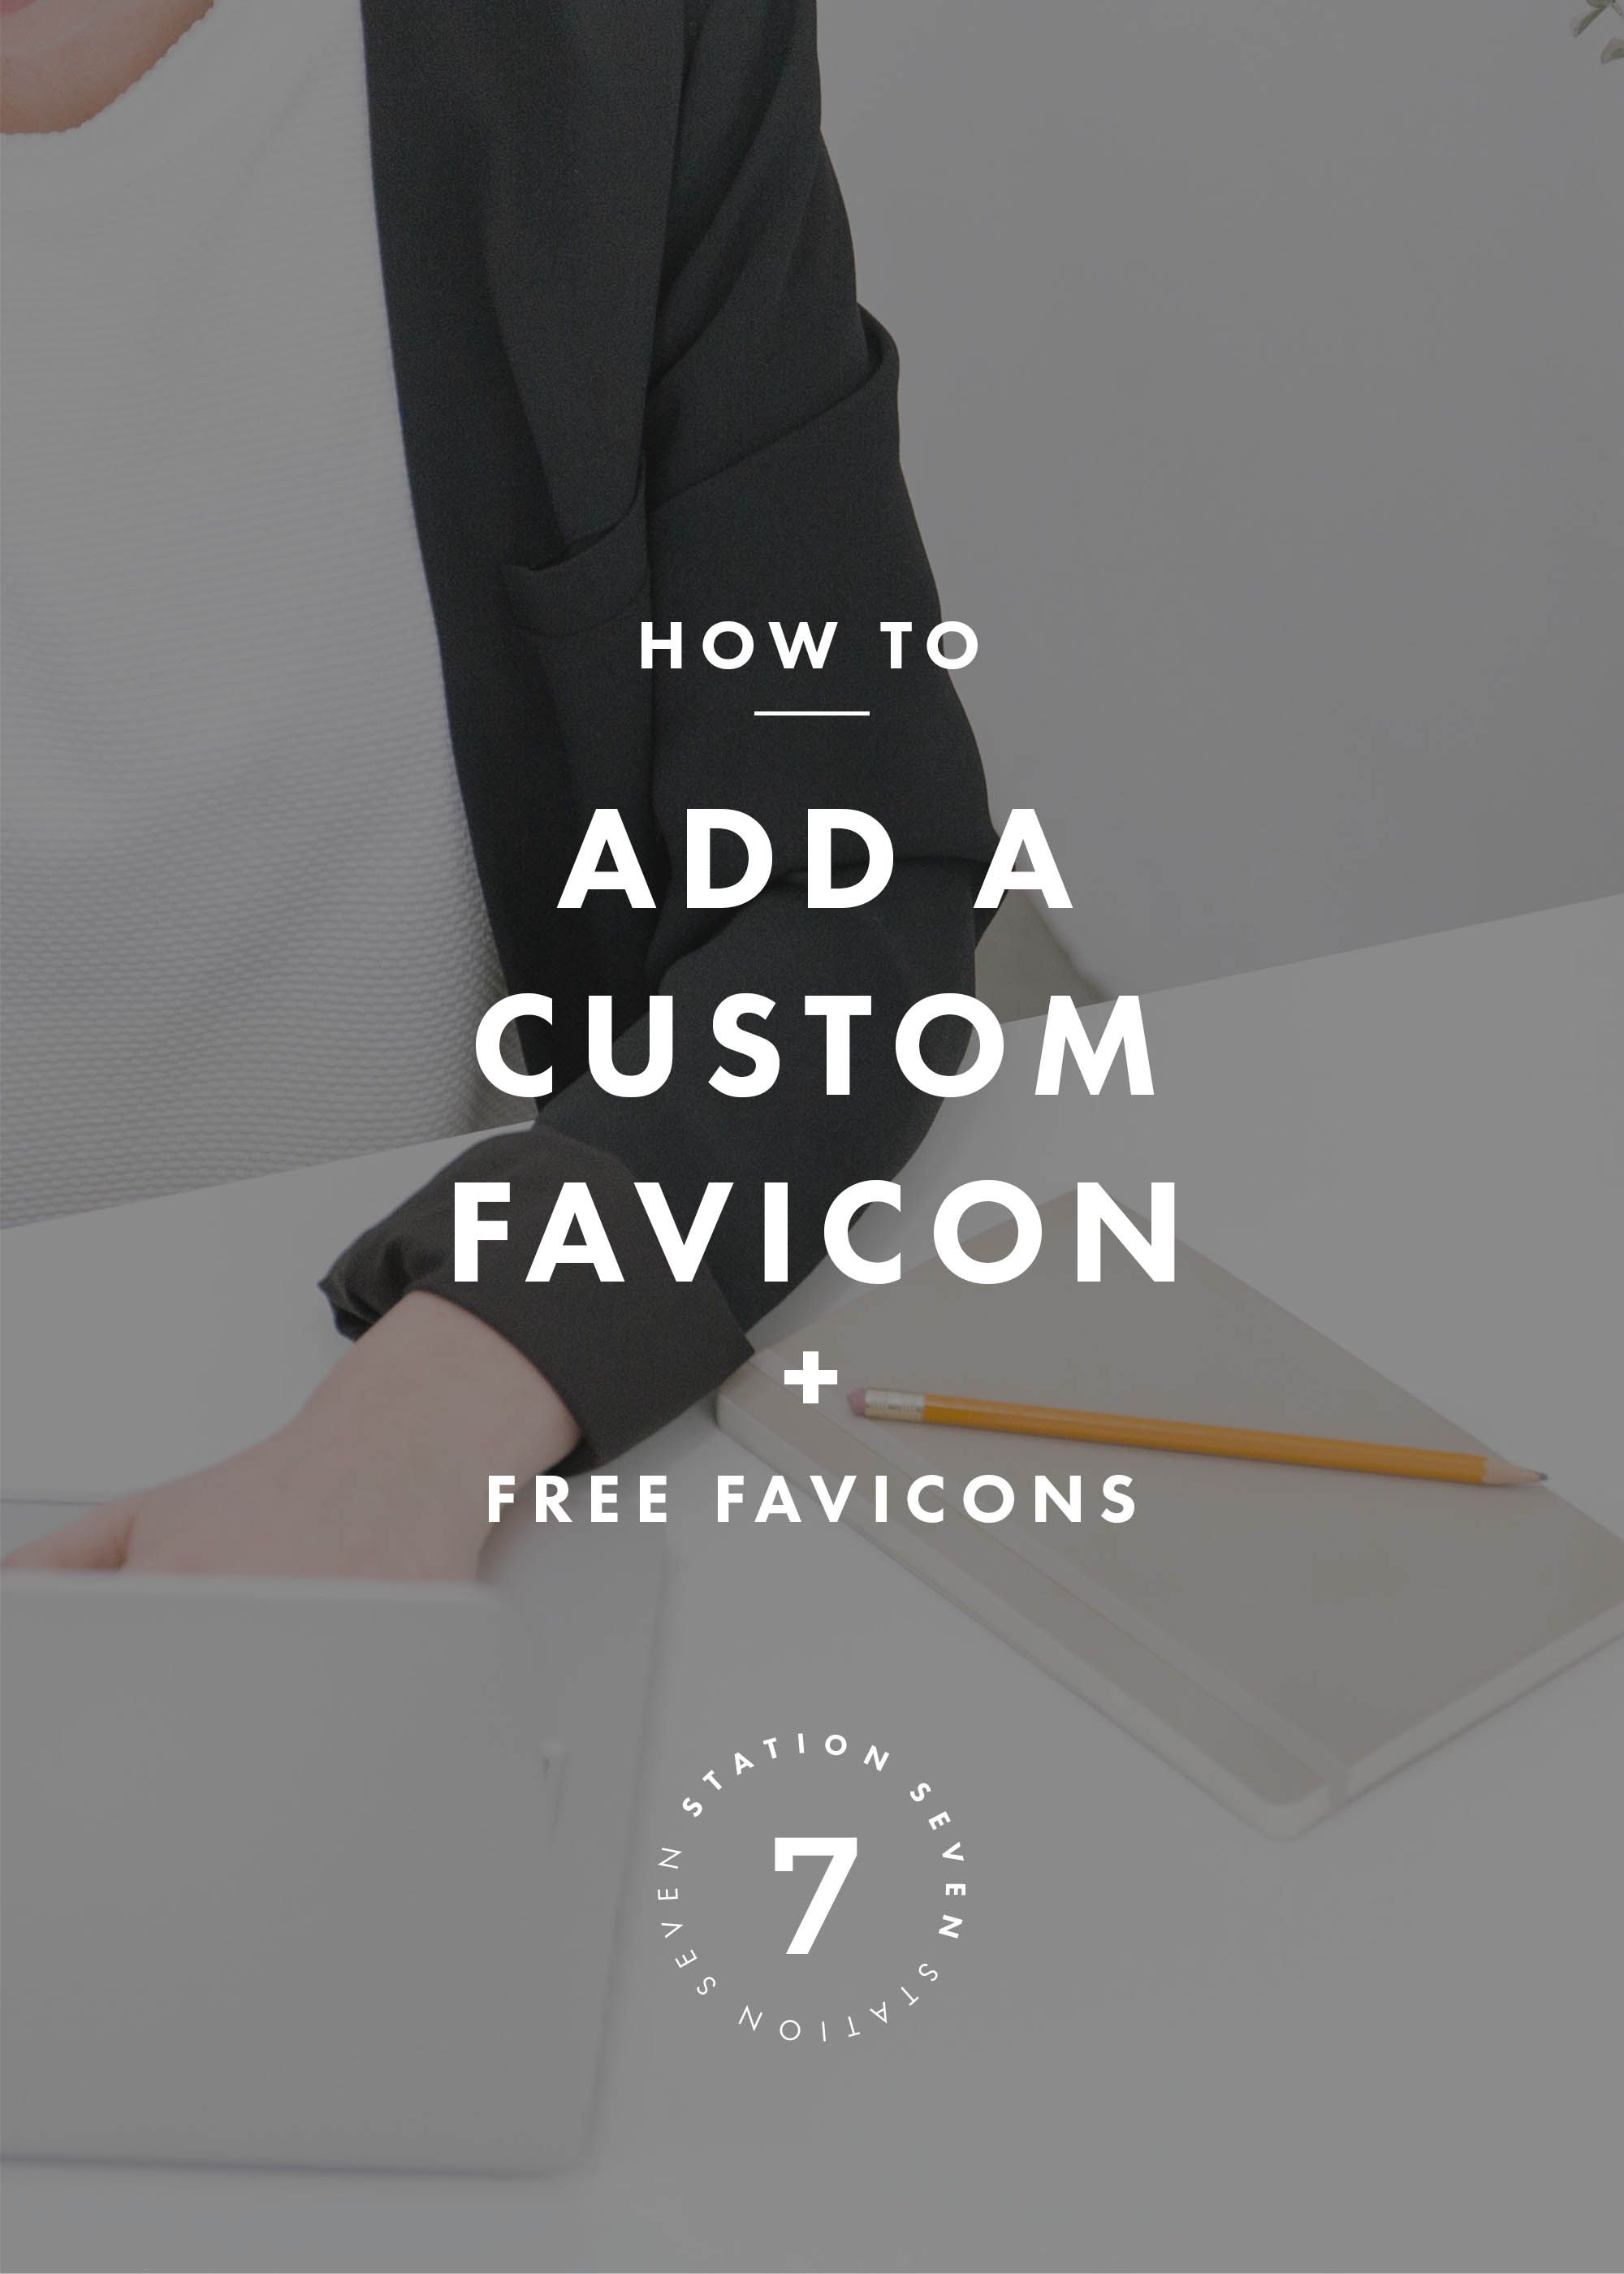 how to add a custom favicon free favicon templates pinterest